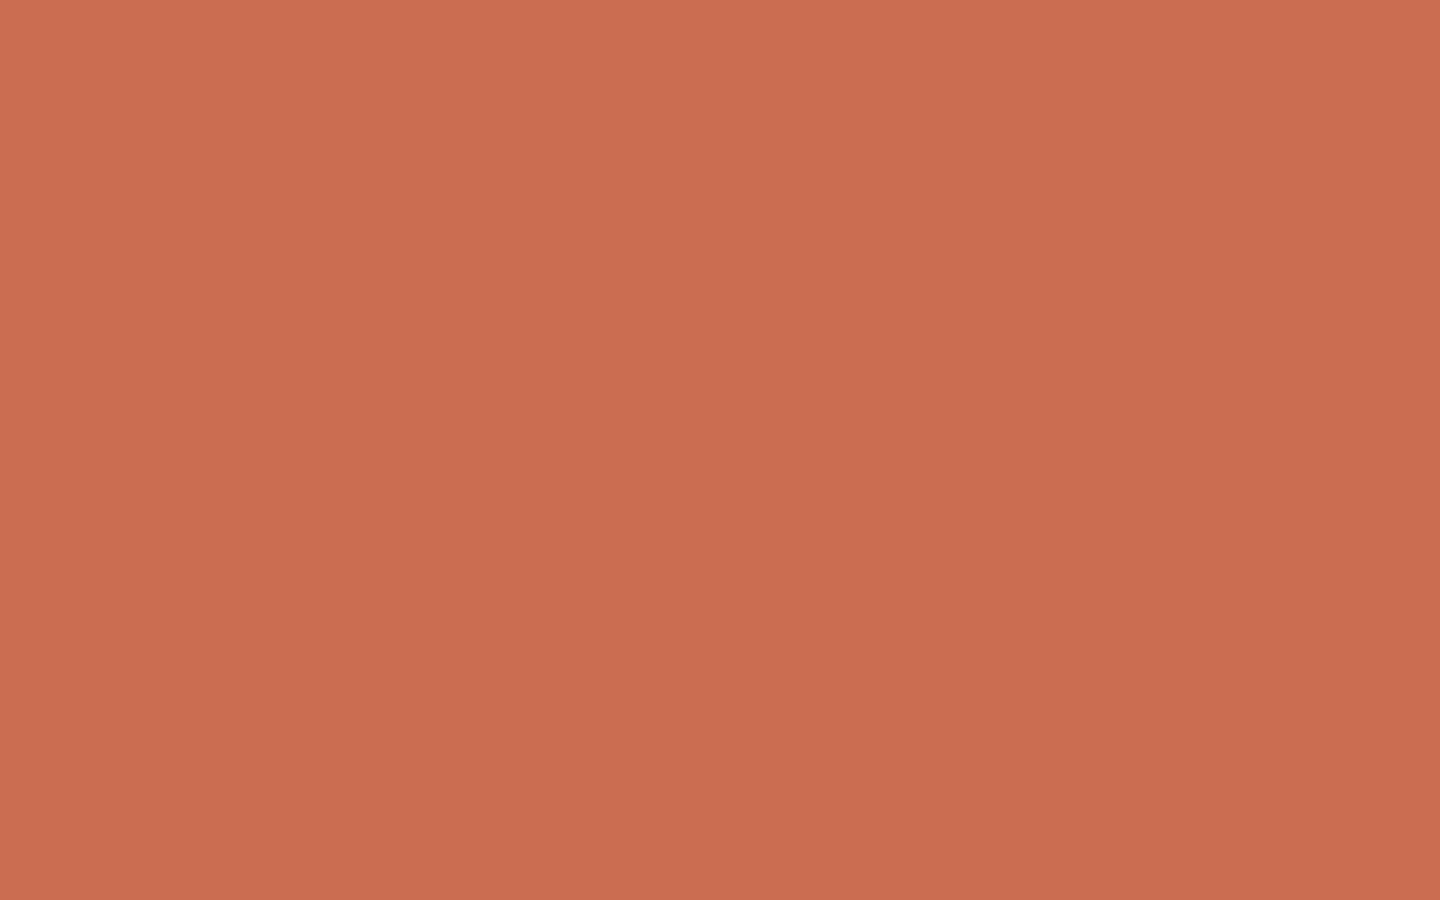 1440x900 resolution Copper Red solid color background view and 1440x900